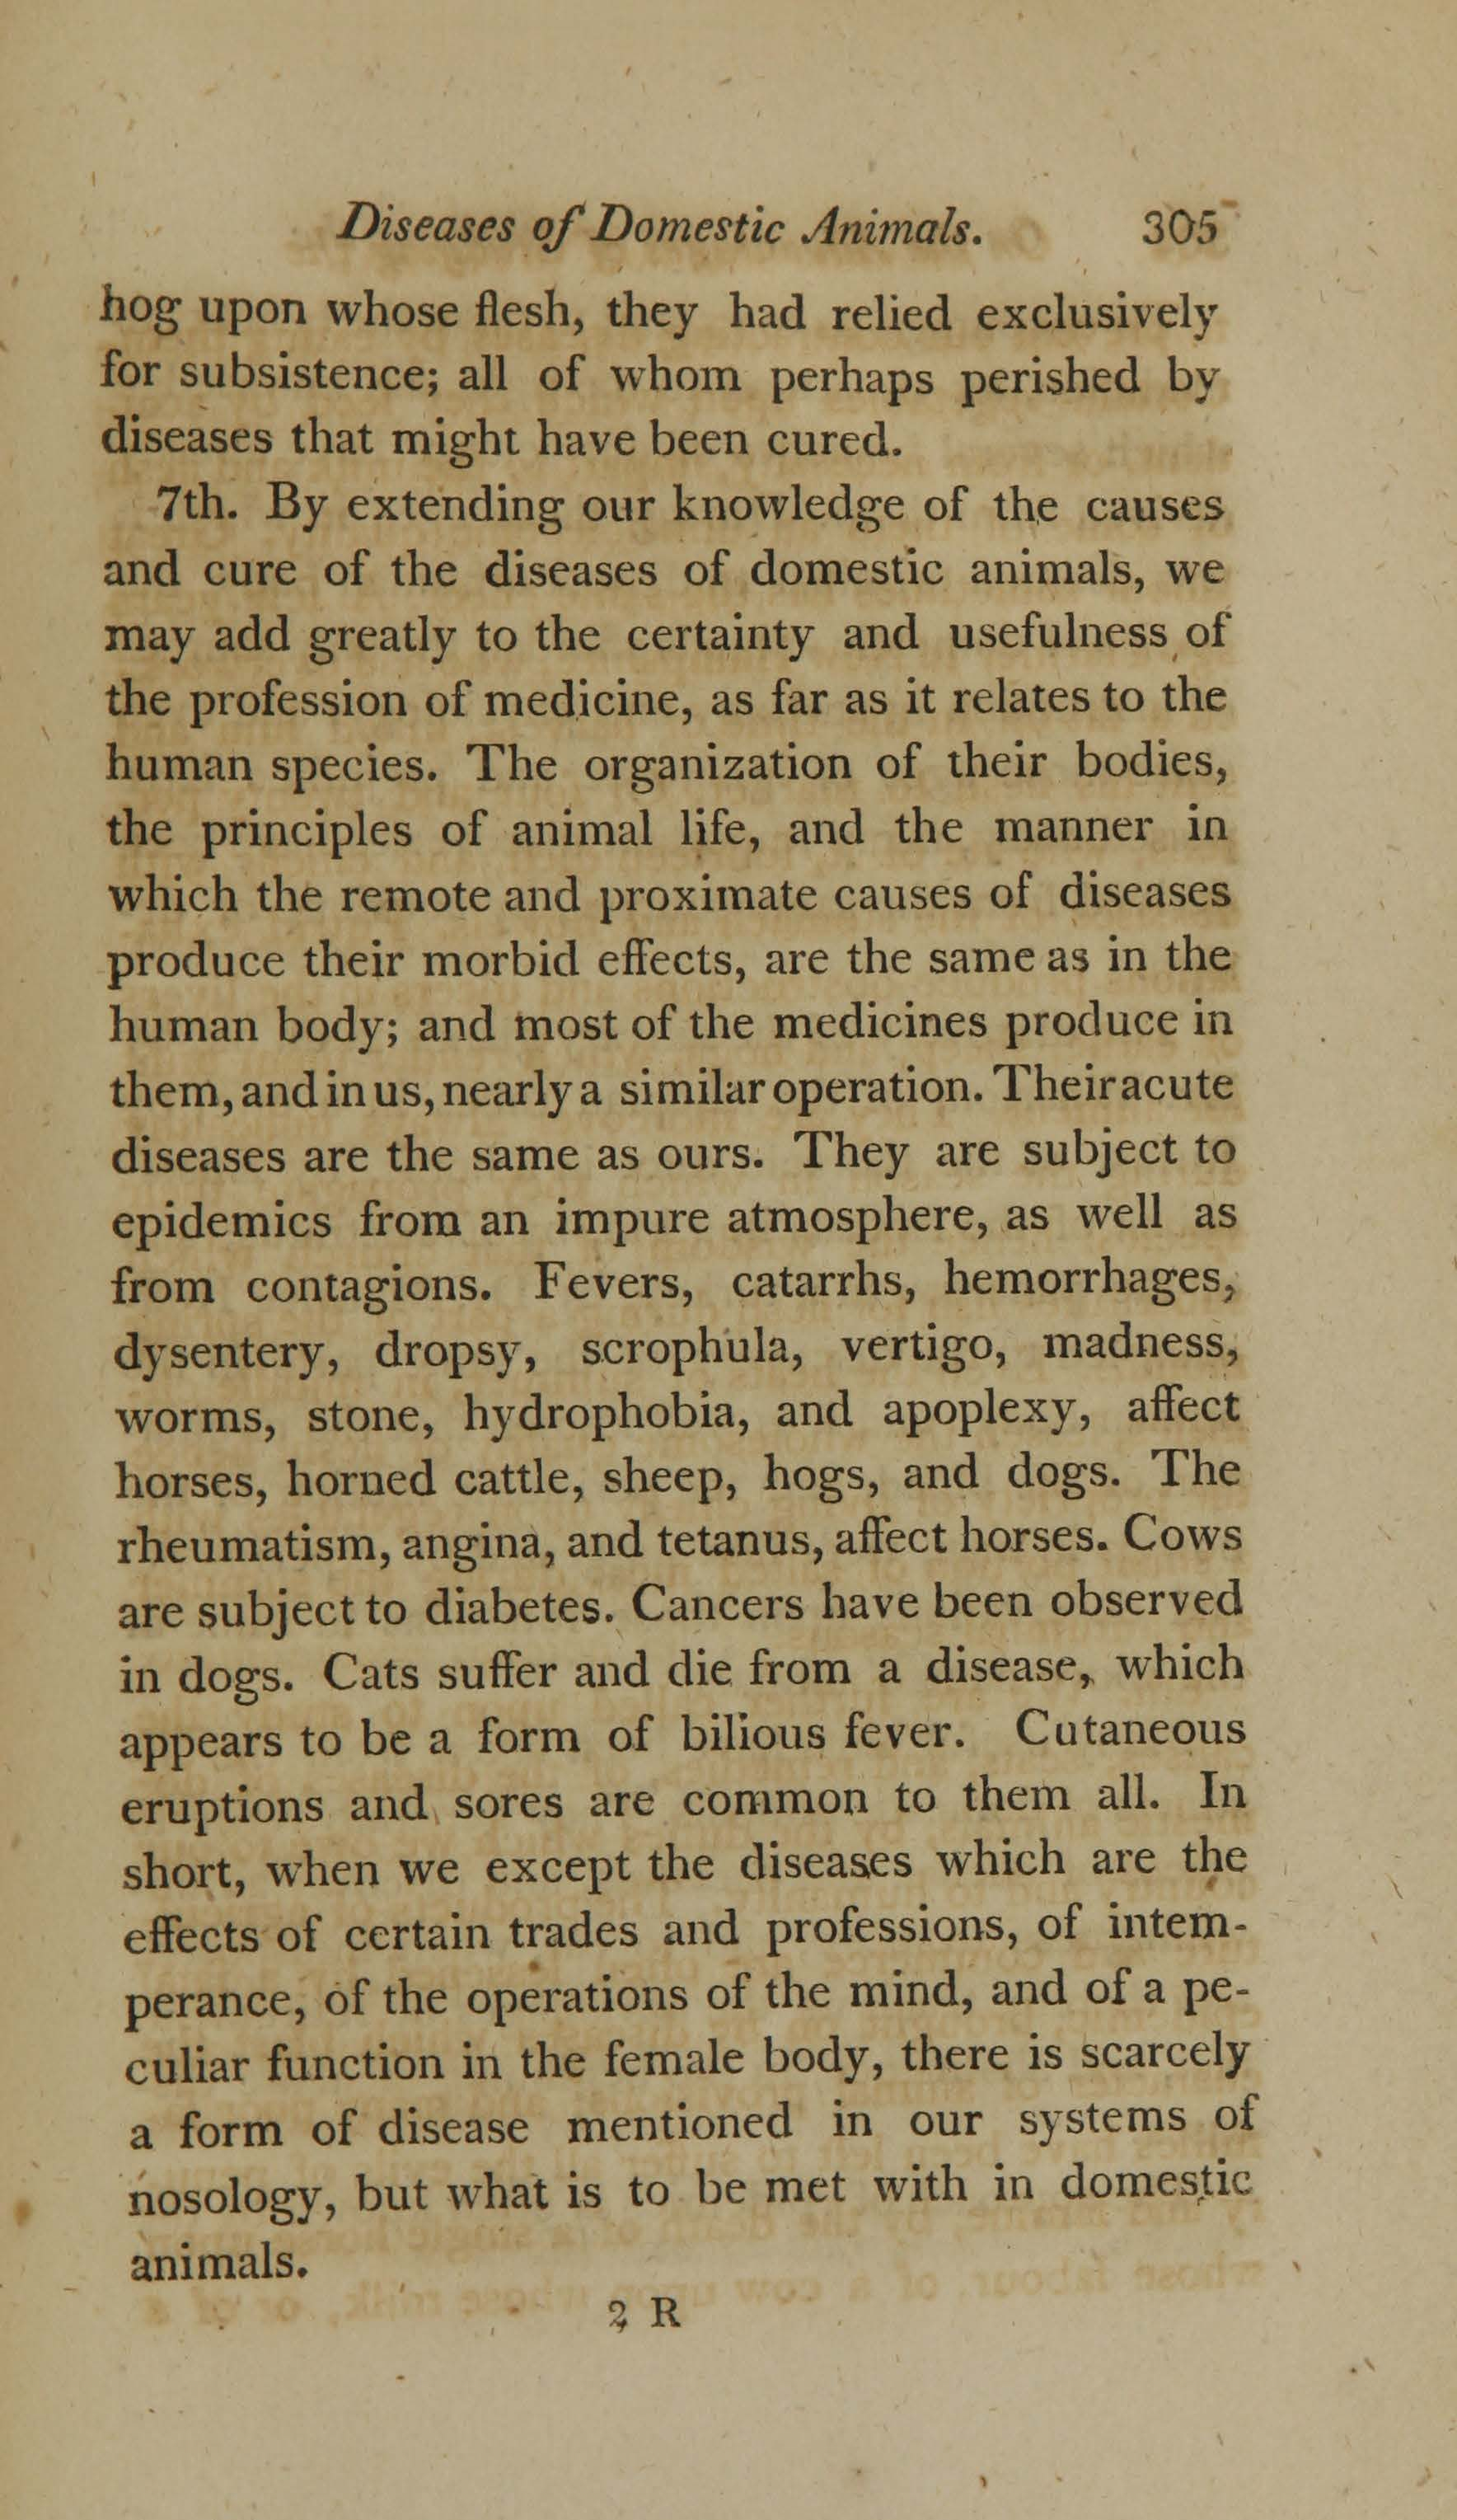 On the Duty and Advantages of Studying the Diseases of Domestic Animals (page 11)